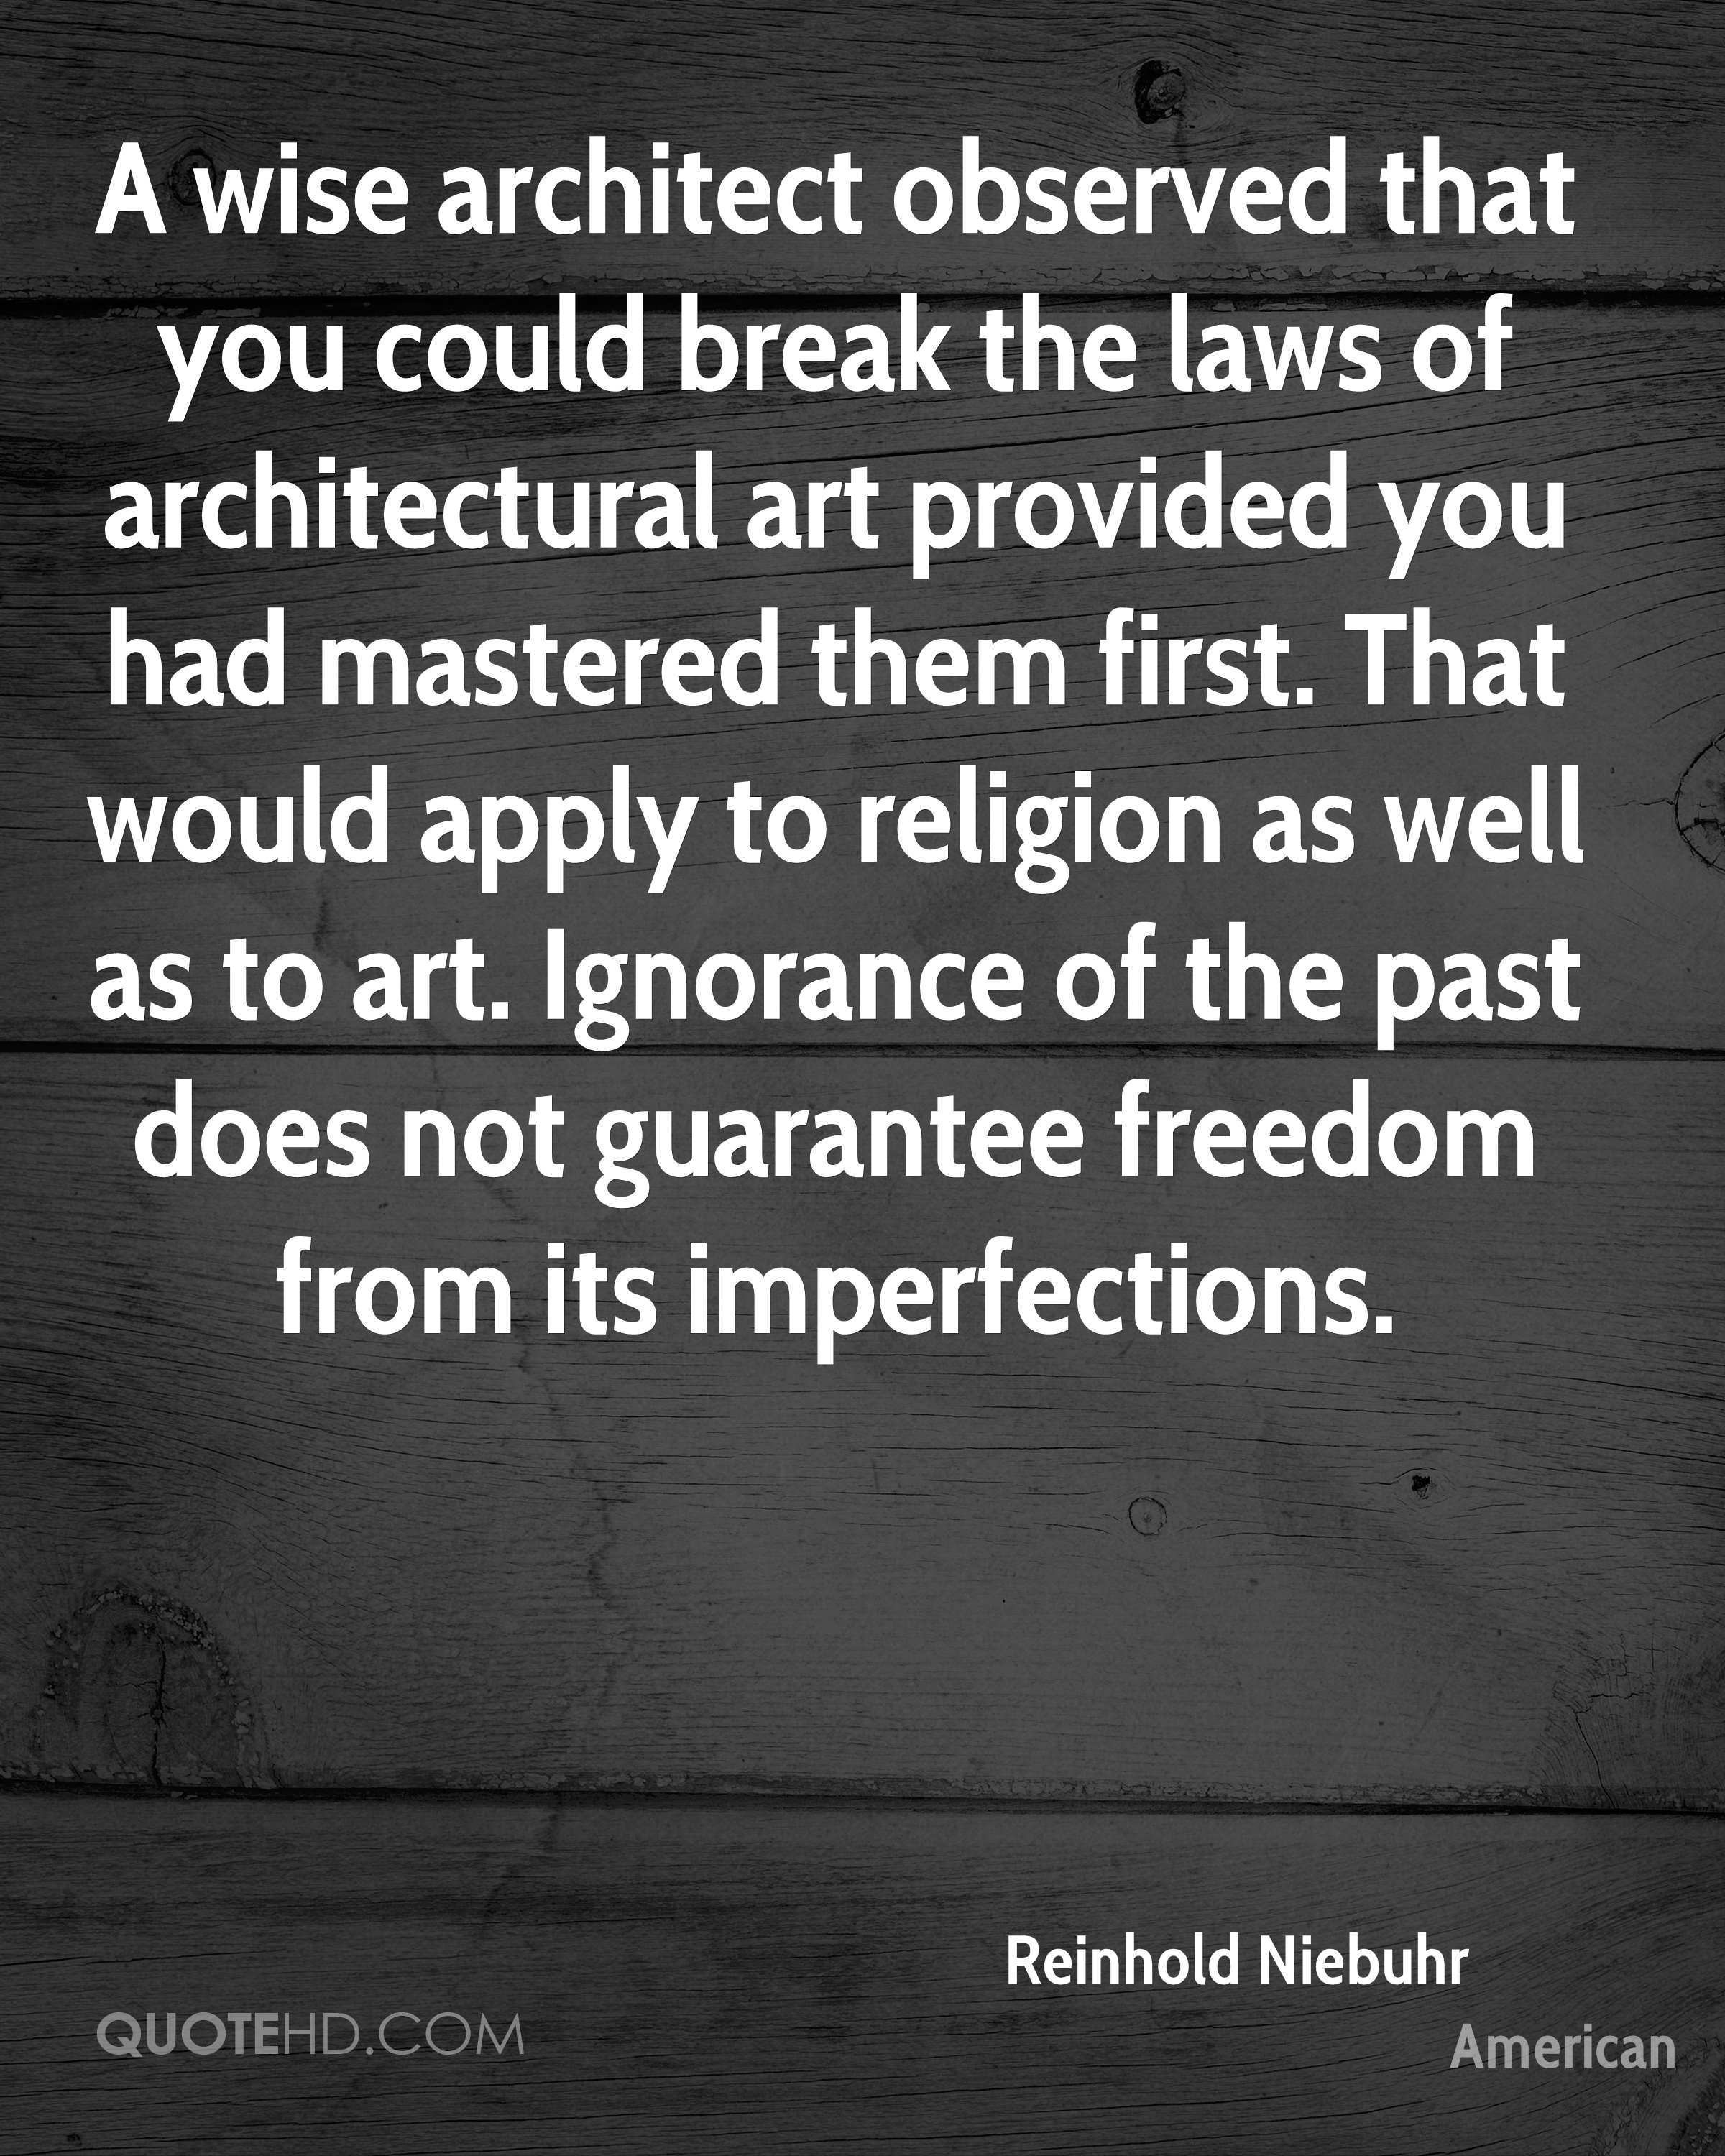 A wise architect observed that you could break the laws of architectural art provided you had mastered them first. That would apply to religion as well as to art. Ignorance of the past does not guarantee freedom from its imperfections.